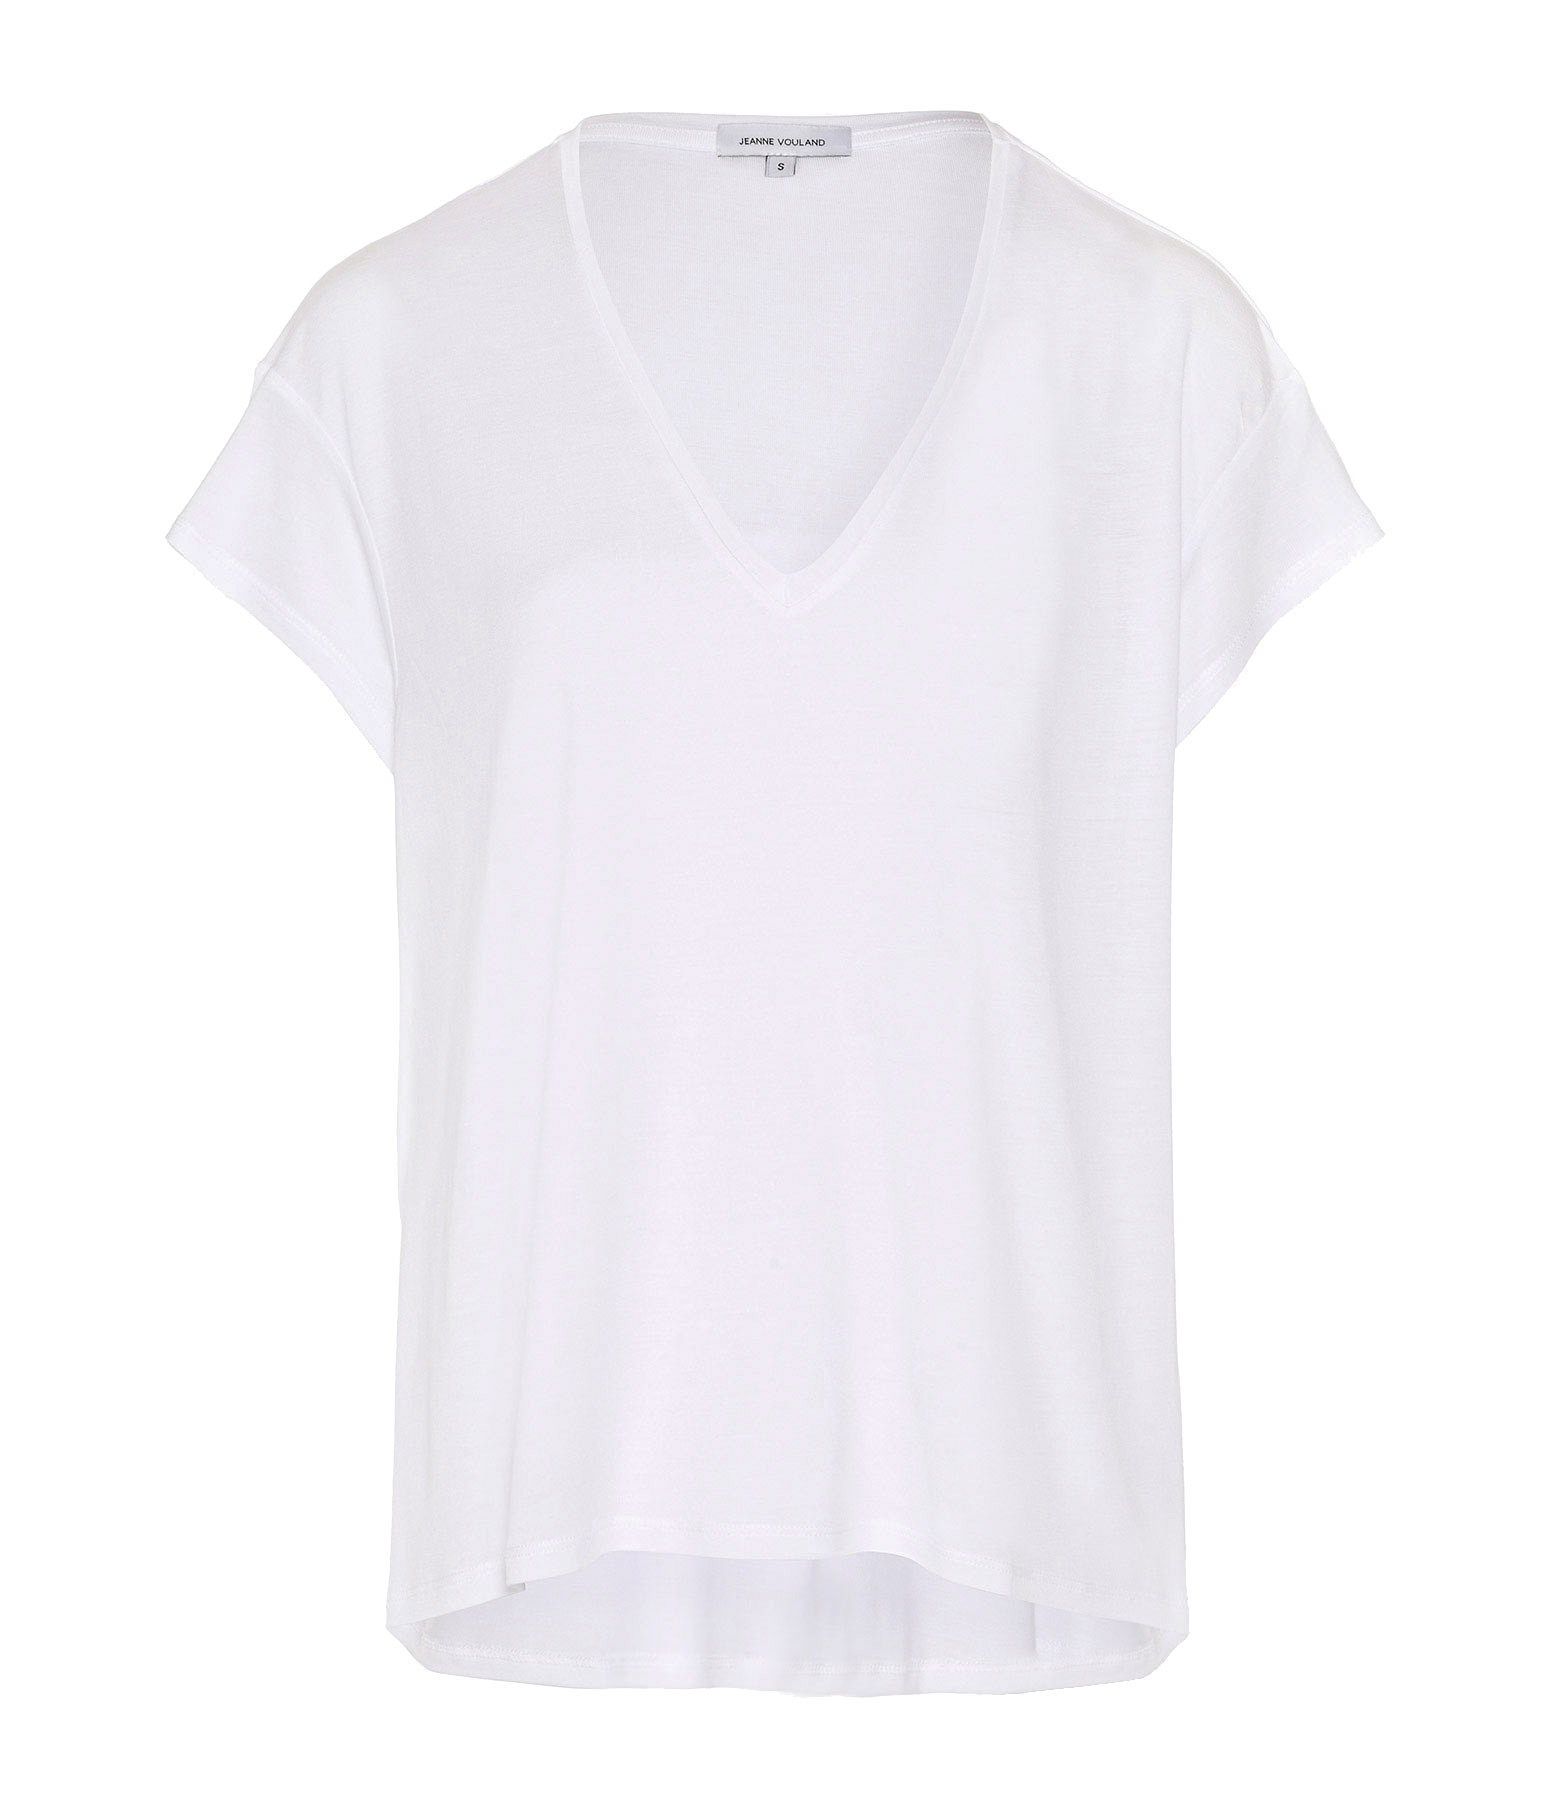 JEANNE VOULAND - Tee-shirt Bacha Lyocell Blanc